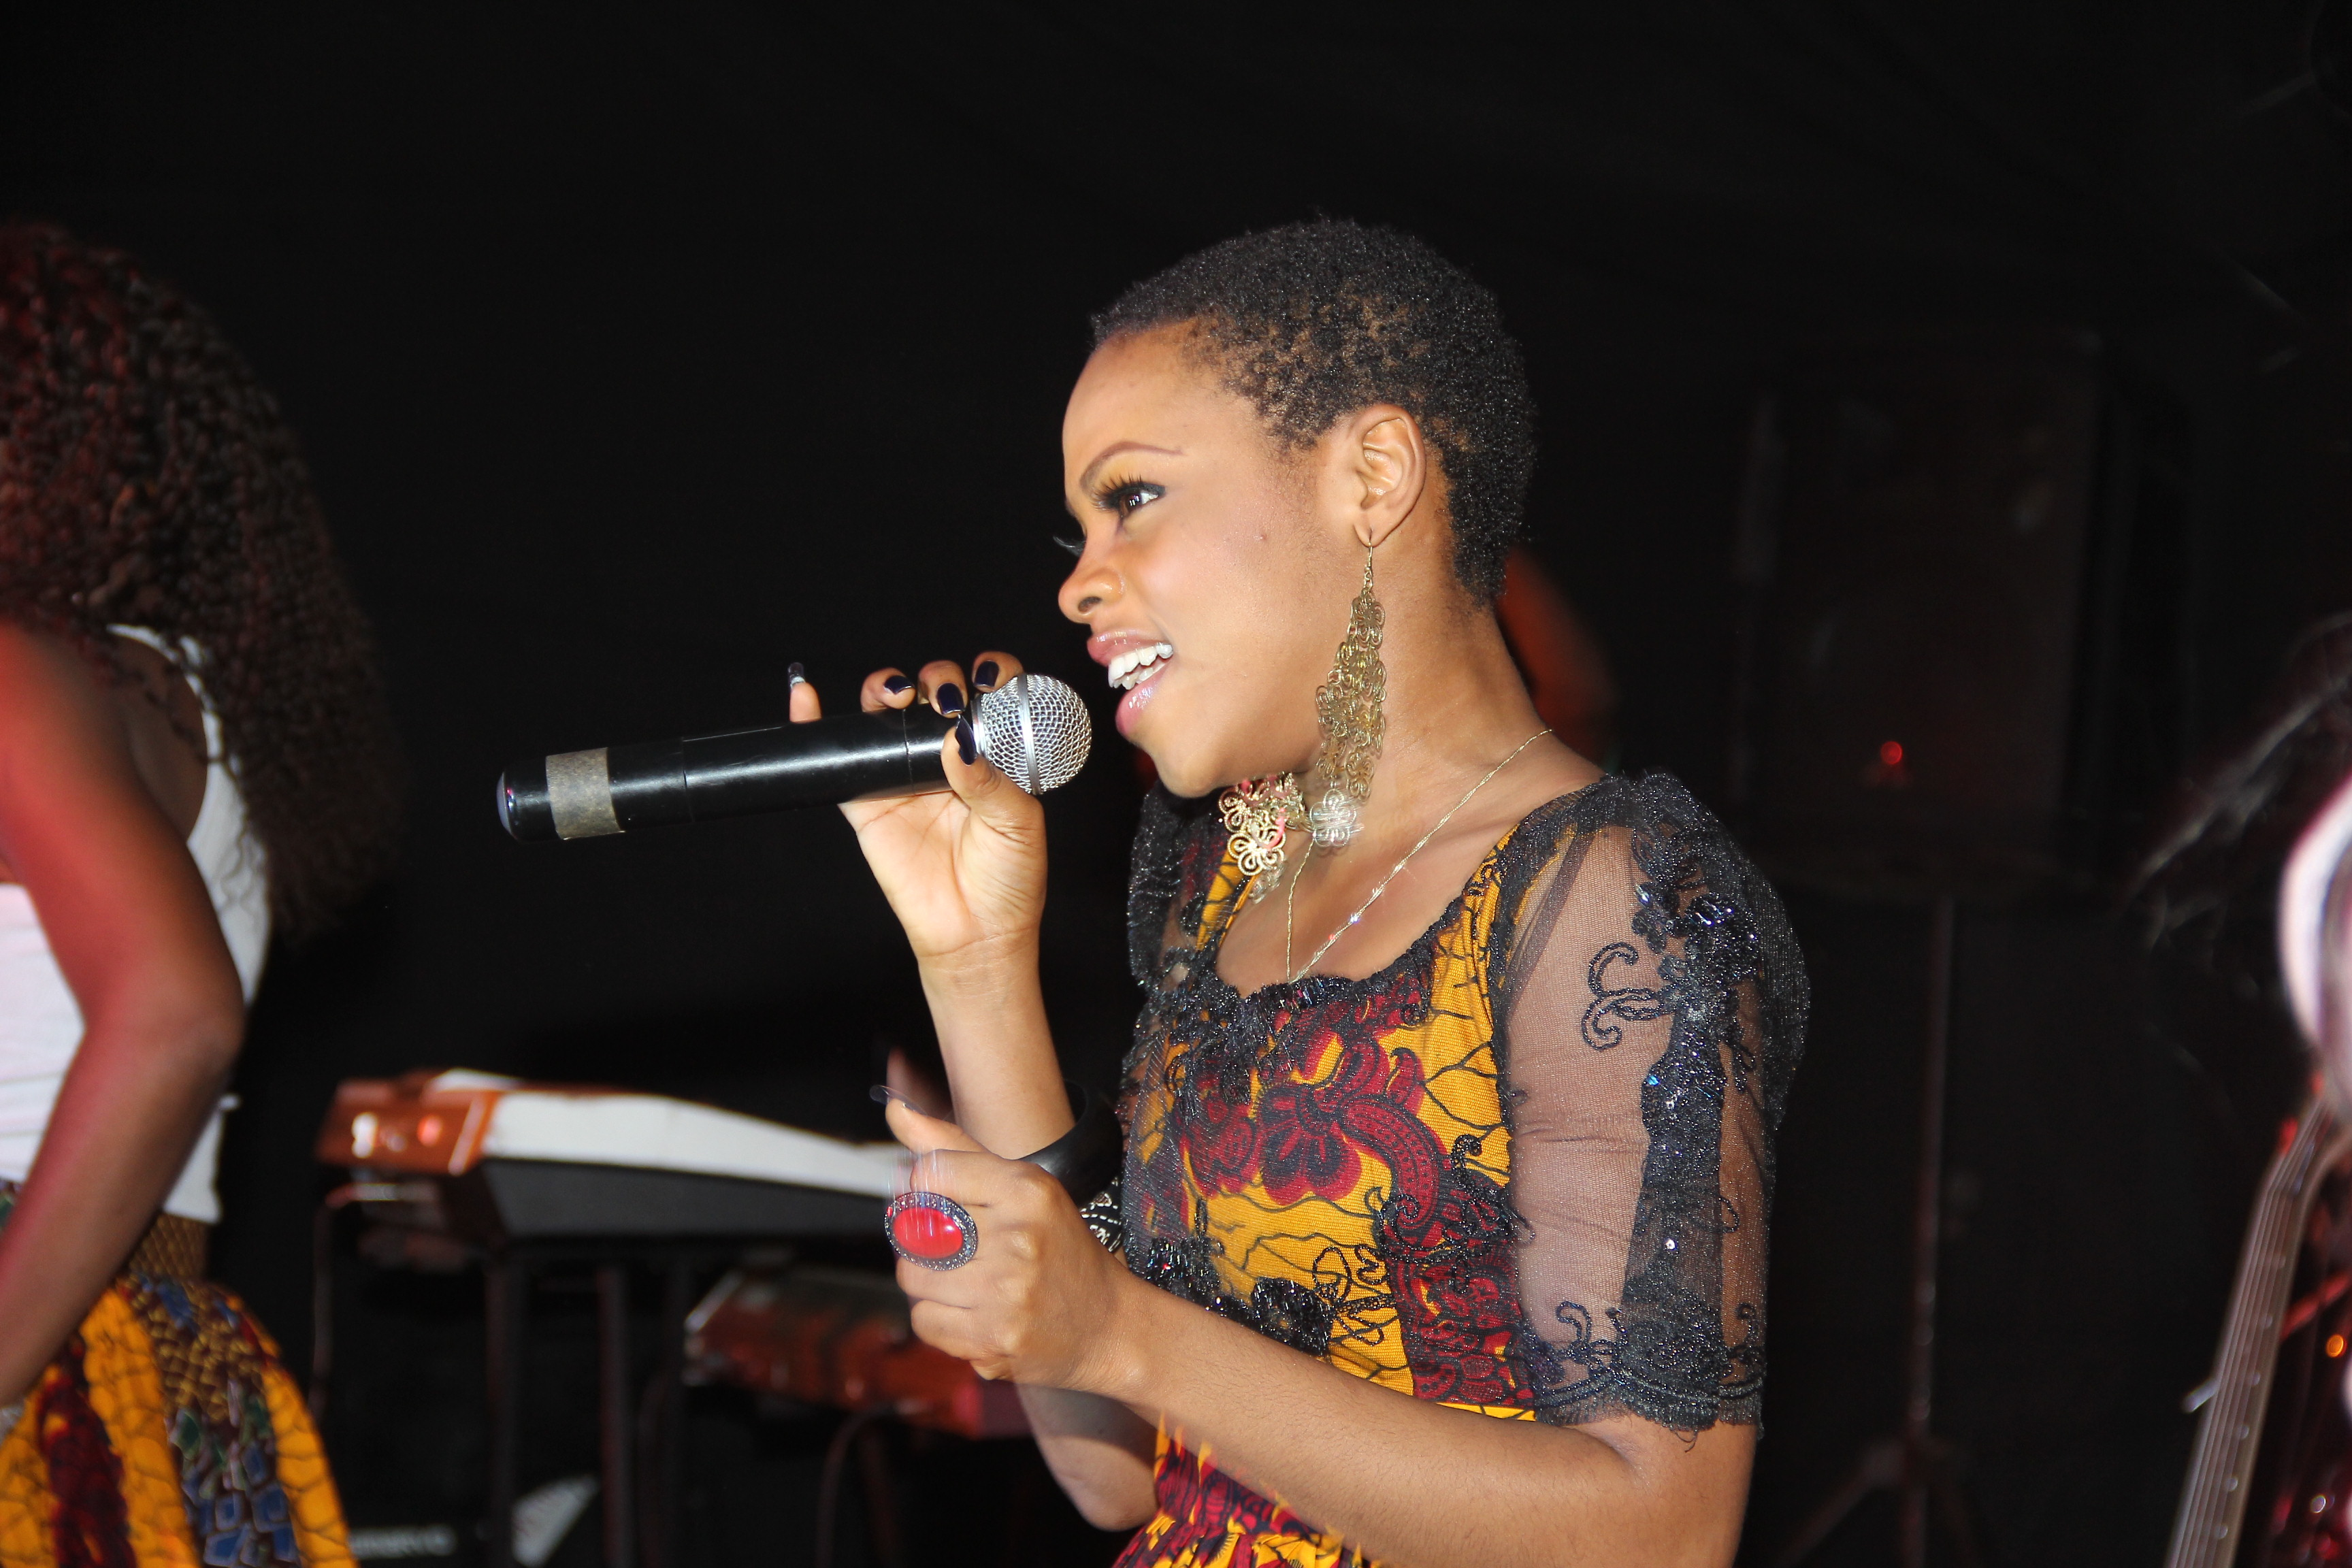 Chidinma performing Kedike on stage